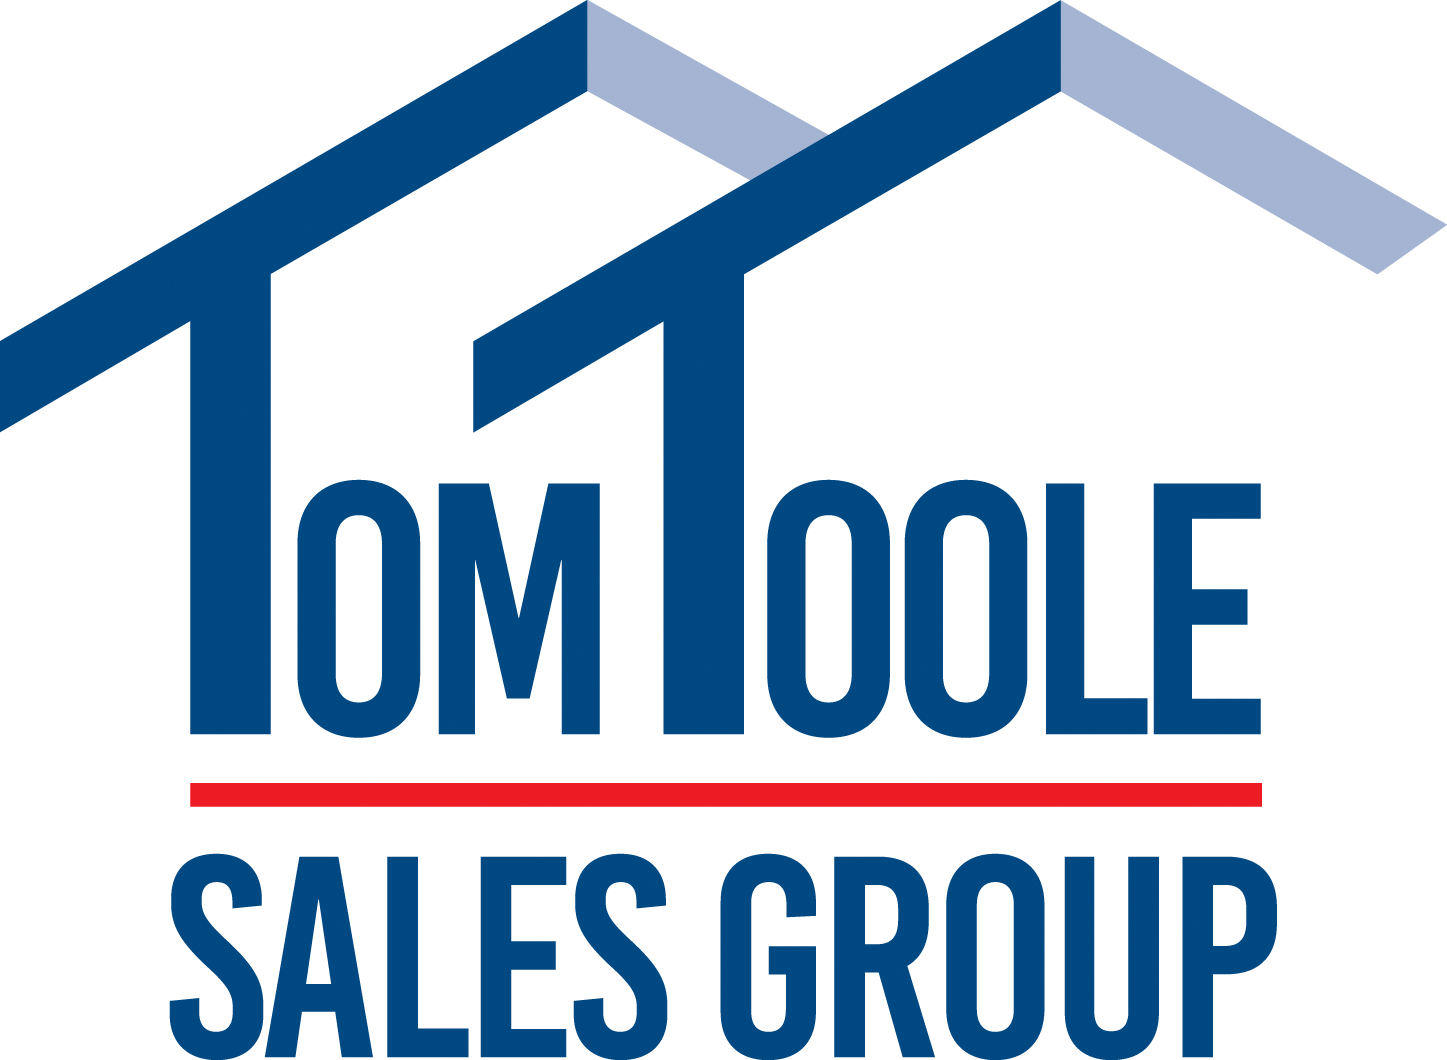 Tom Toole Sales Group at RE/MAX Main Line logo